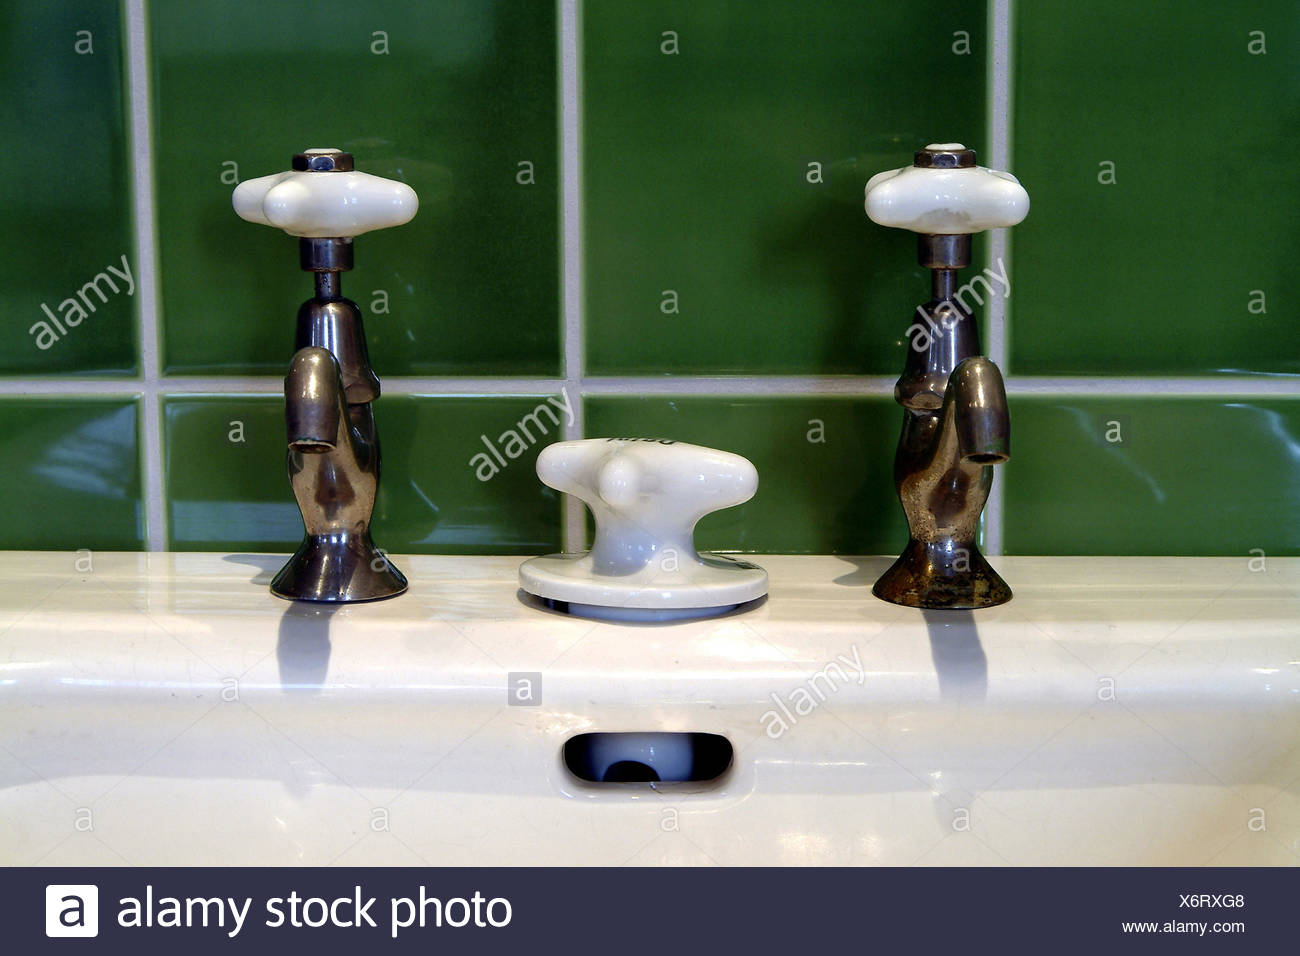 Hot And Cold Taps Stock Photos & Hot And Cold Taps Stock Images - Alamy